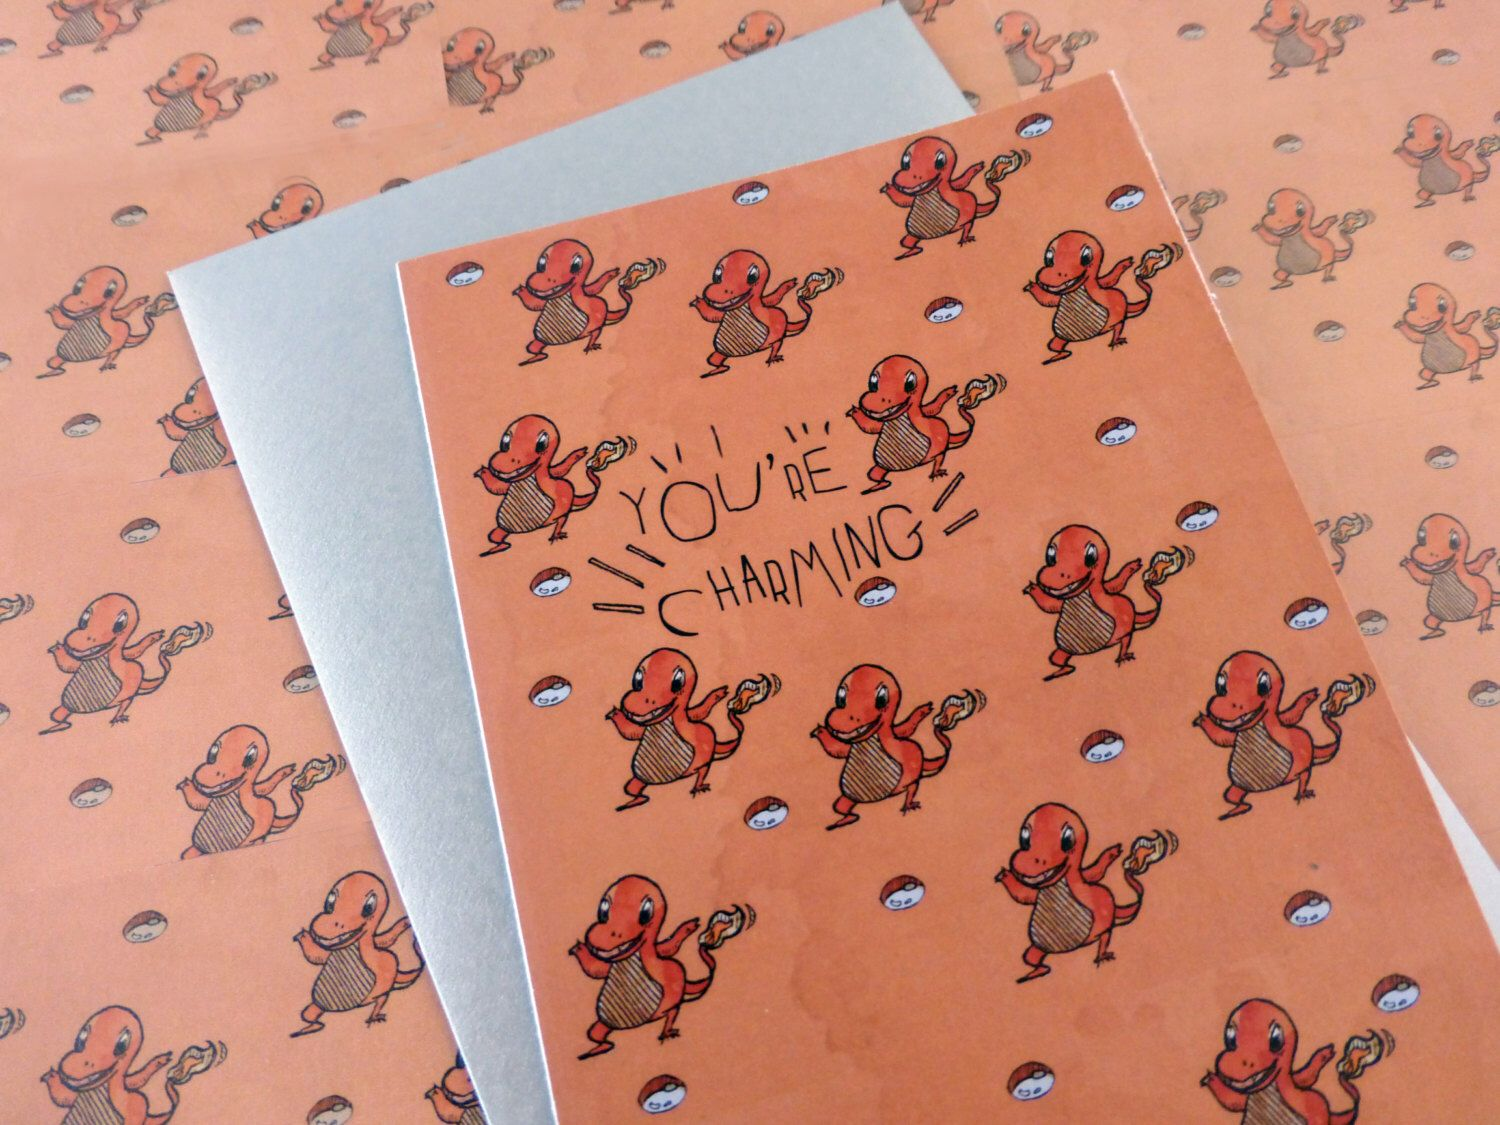 Charmander   Pokemon Greeting Card   Blank   Best Friend   For him   For her   Anniversary   Humour   Punny   Romantic card   All occasion by lalalam on Etsy https://www.etsy.com/sg-en/listing/249058520/charmander-pokemon-greeting-card-blank